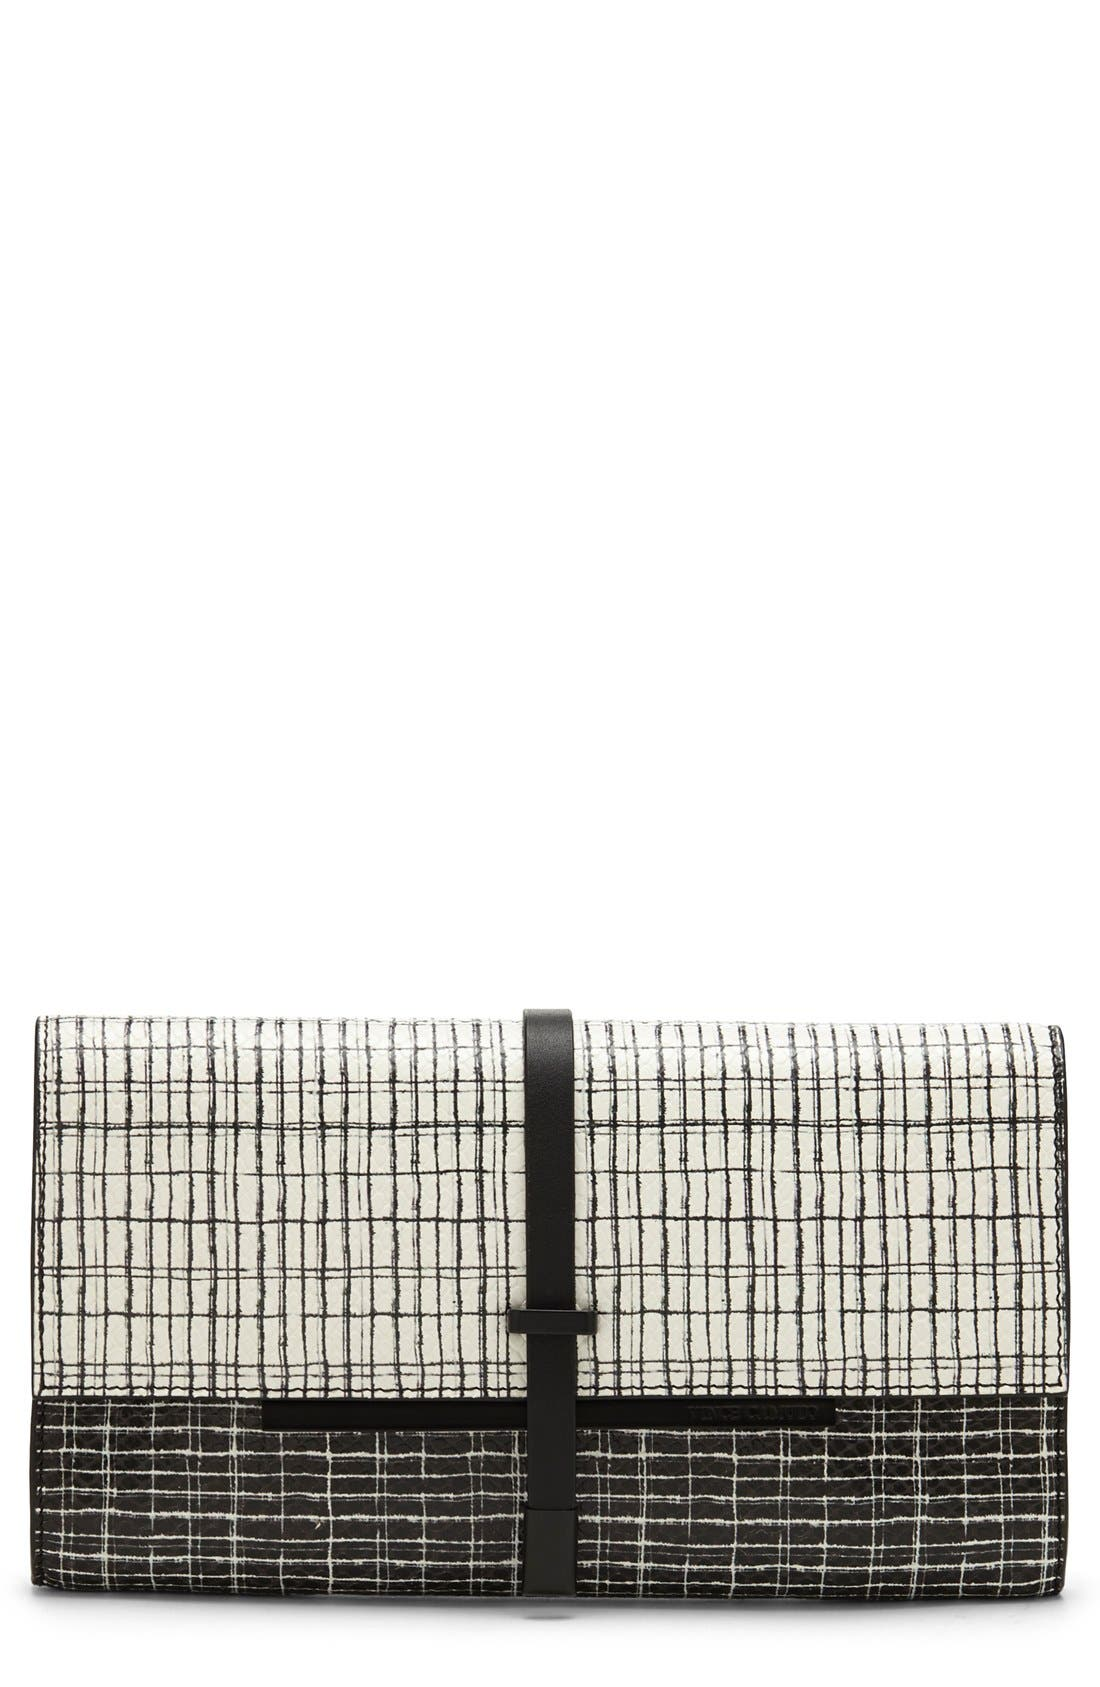 Main Image - Vince Camuto 'Leila' Clutch